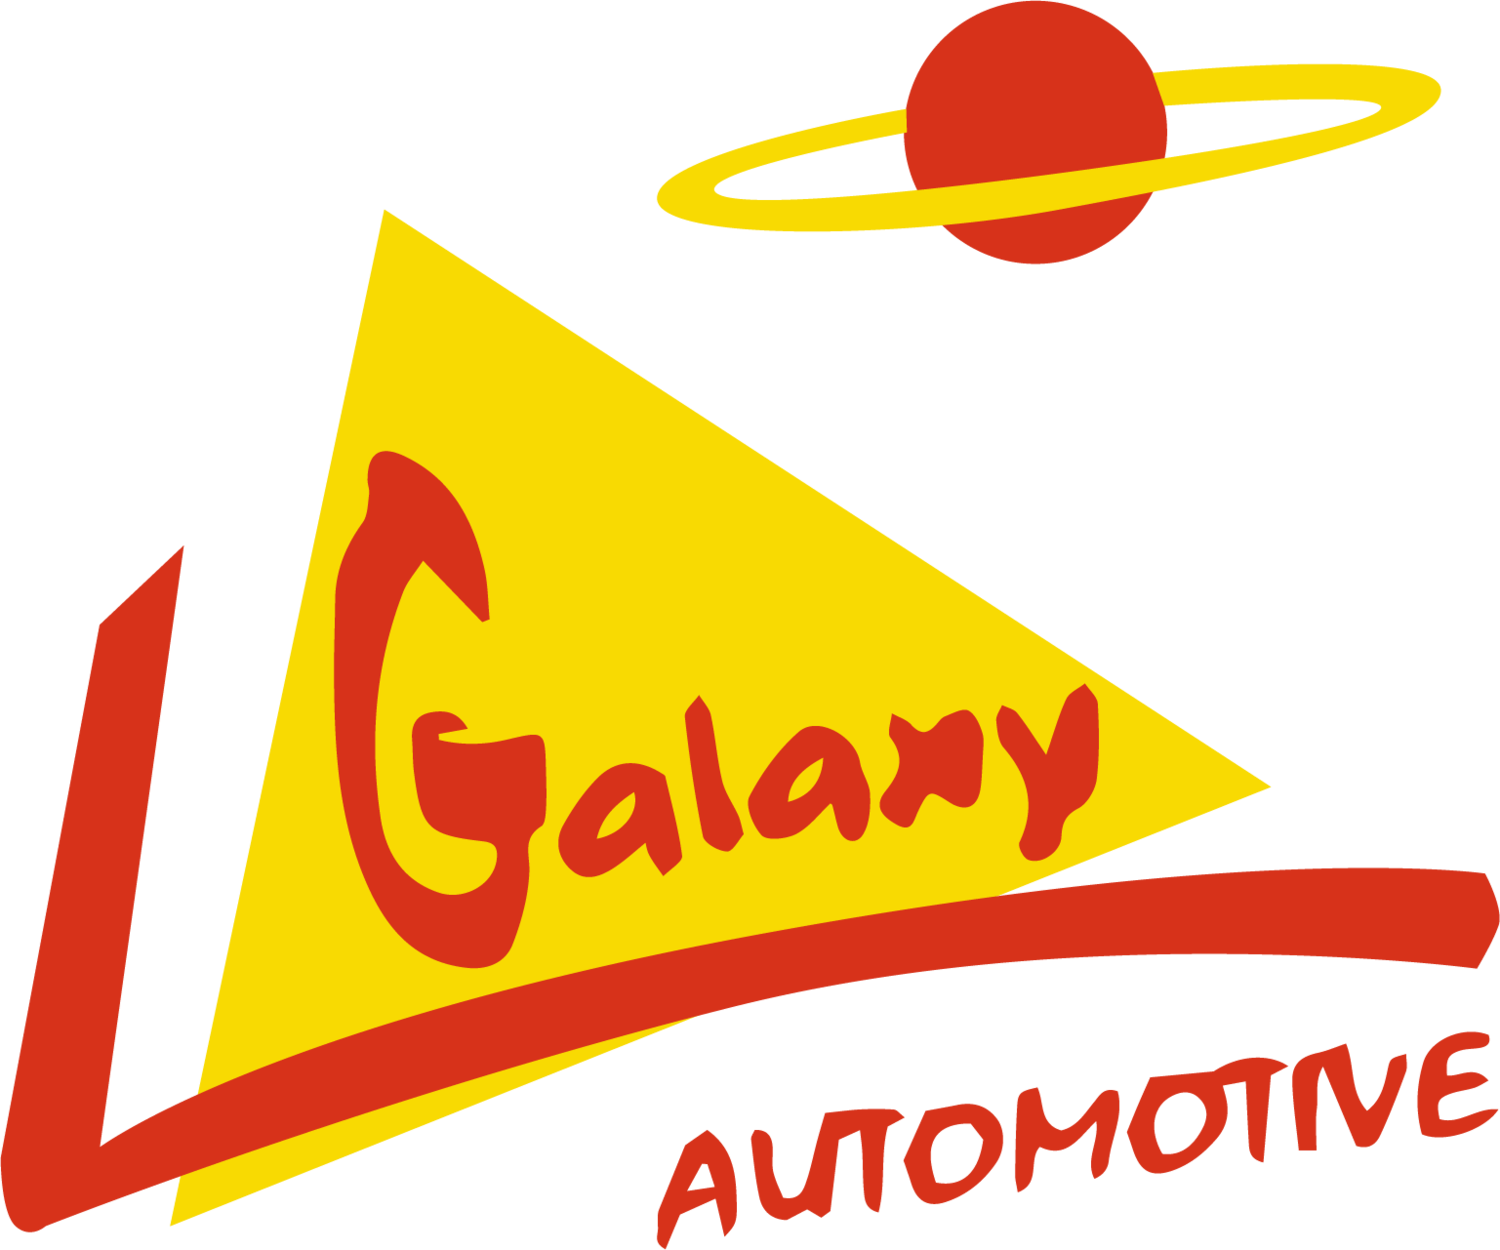 Galaxy Automotive